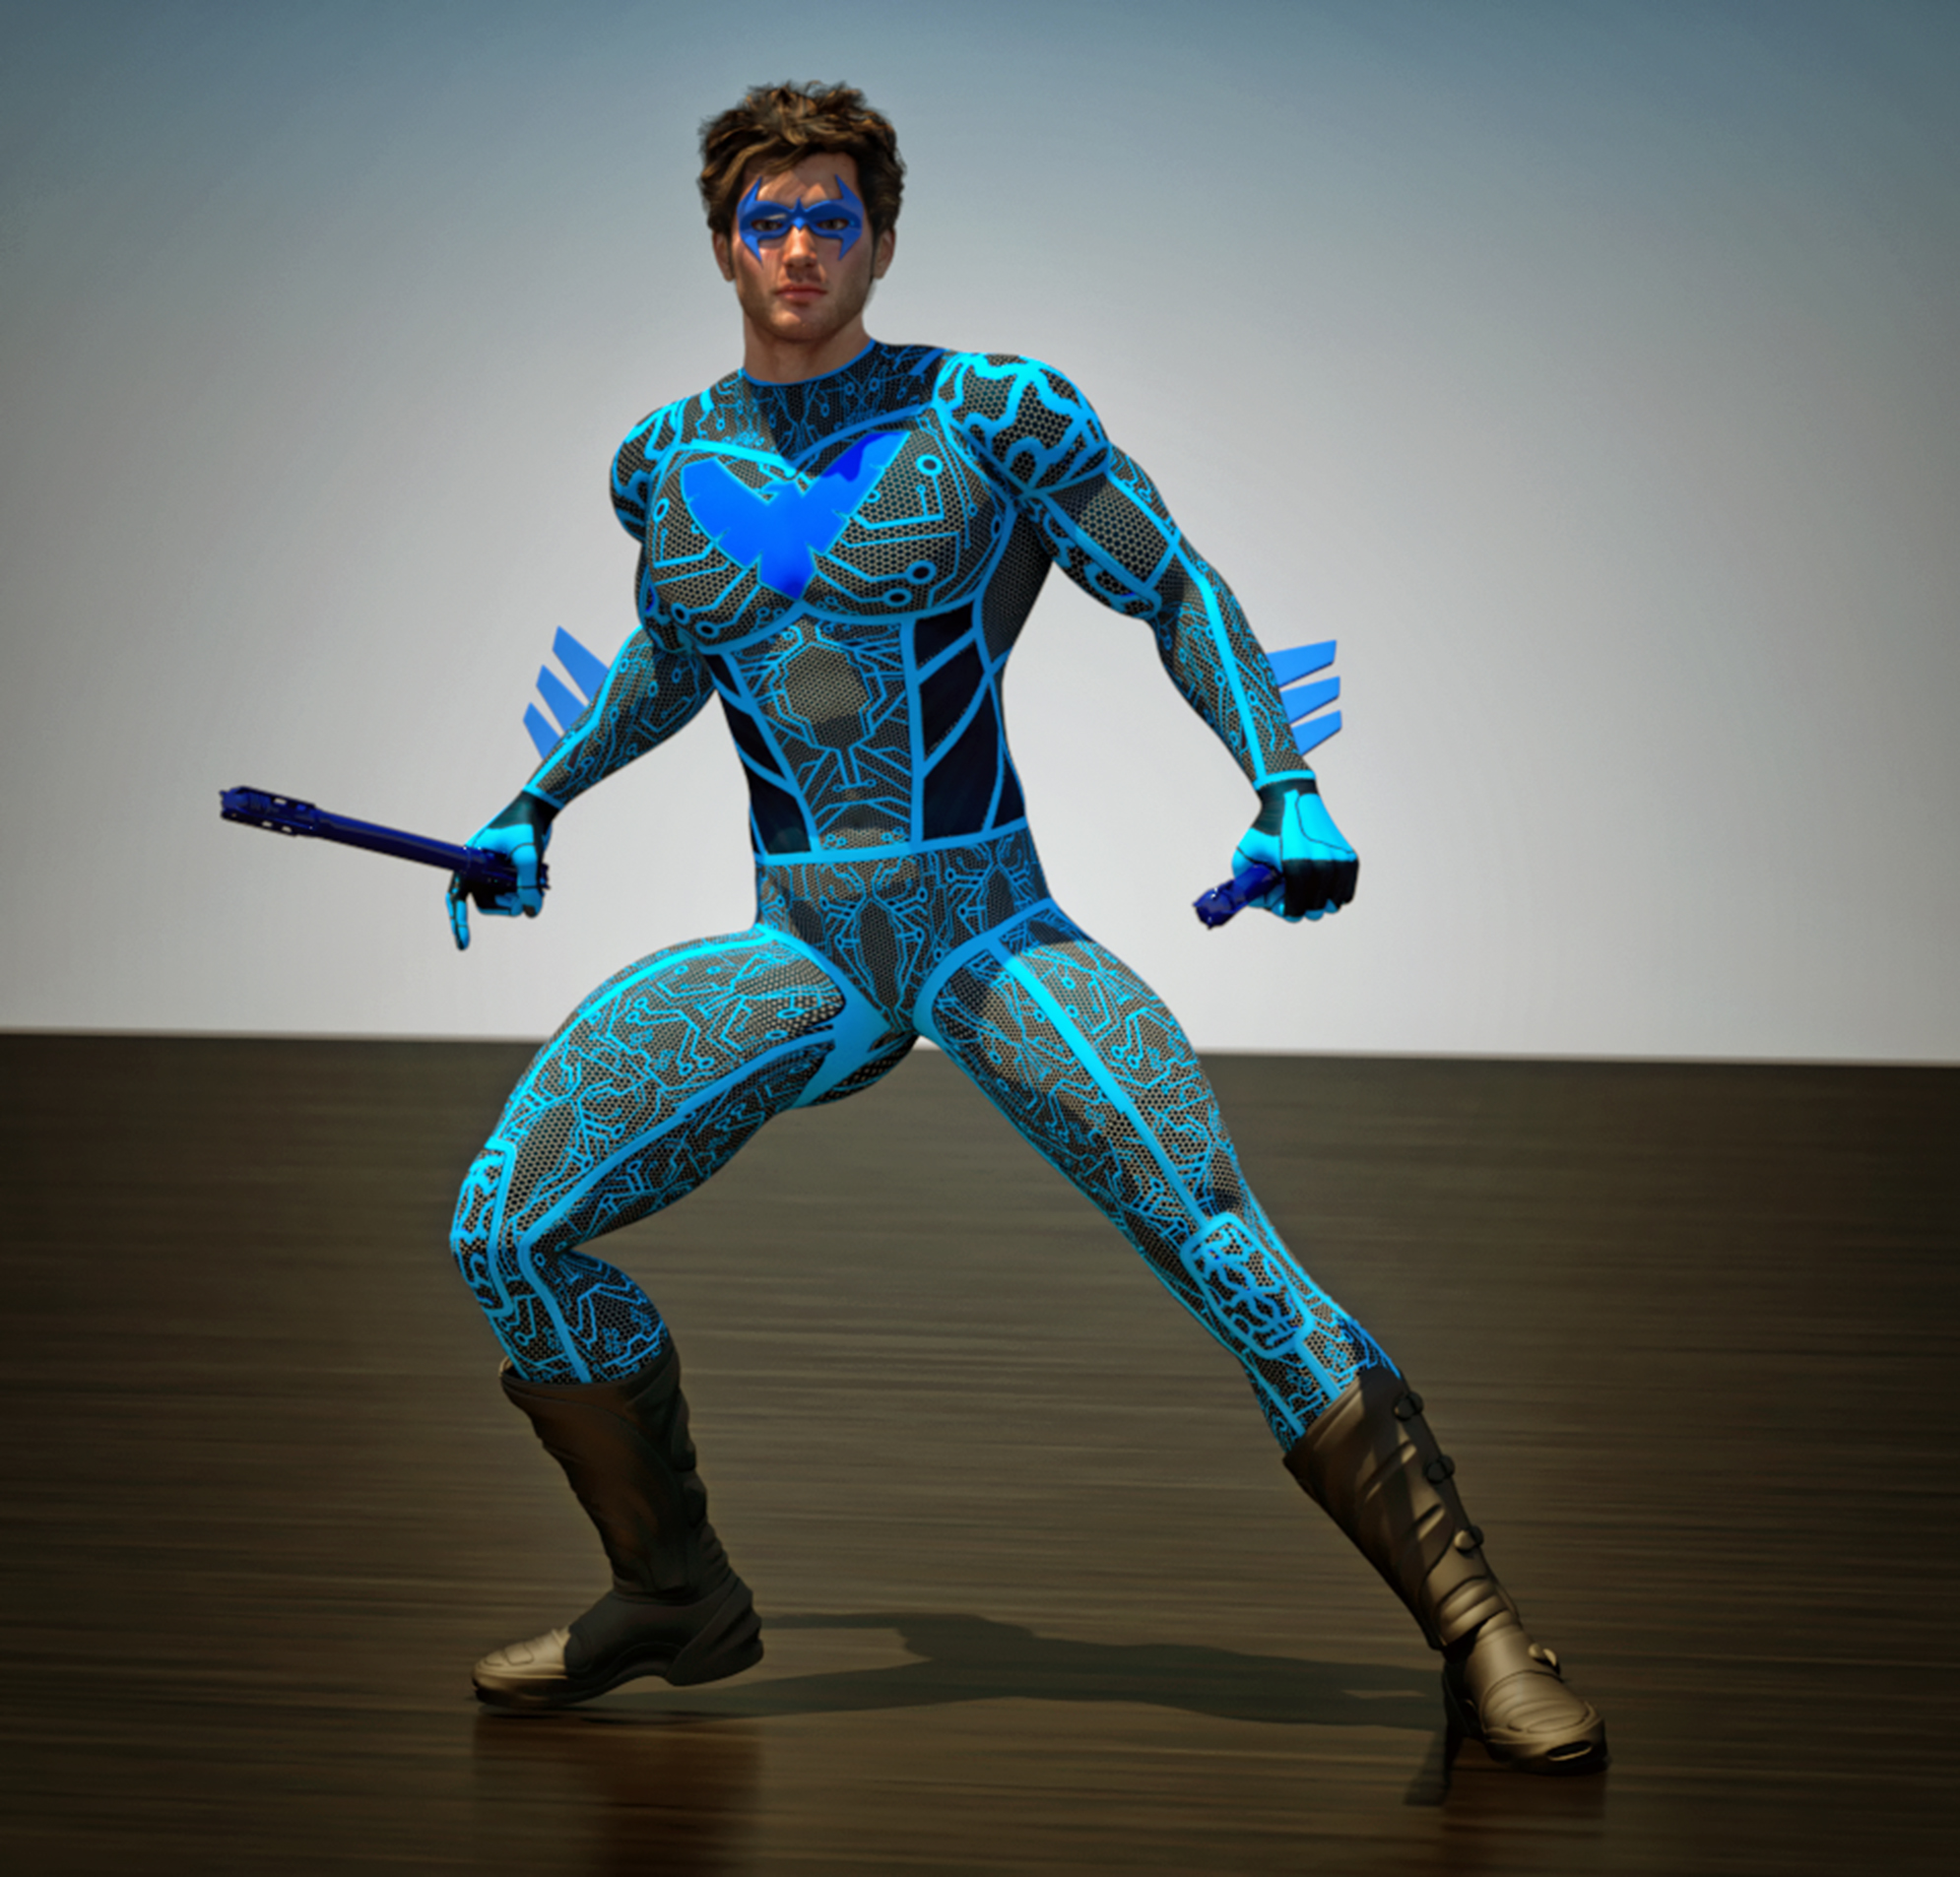 Nightwing tron 2nd skin textures for M4